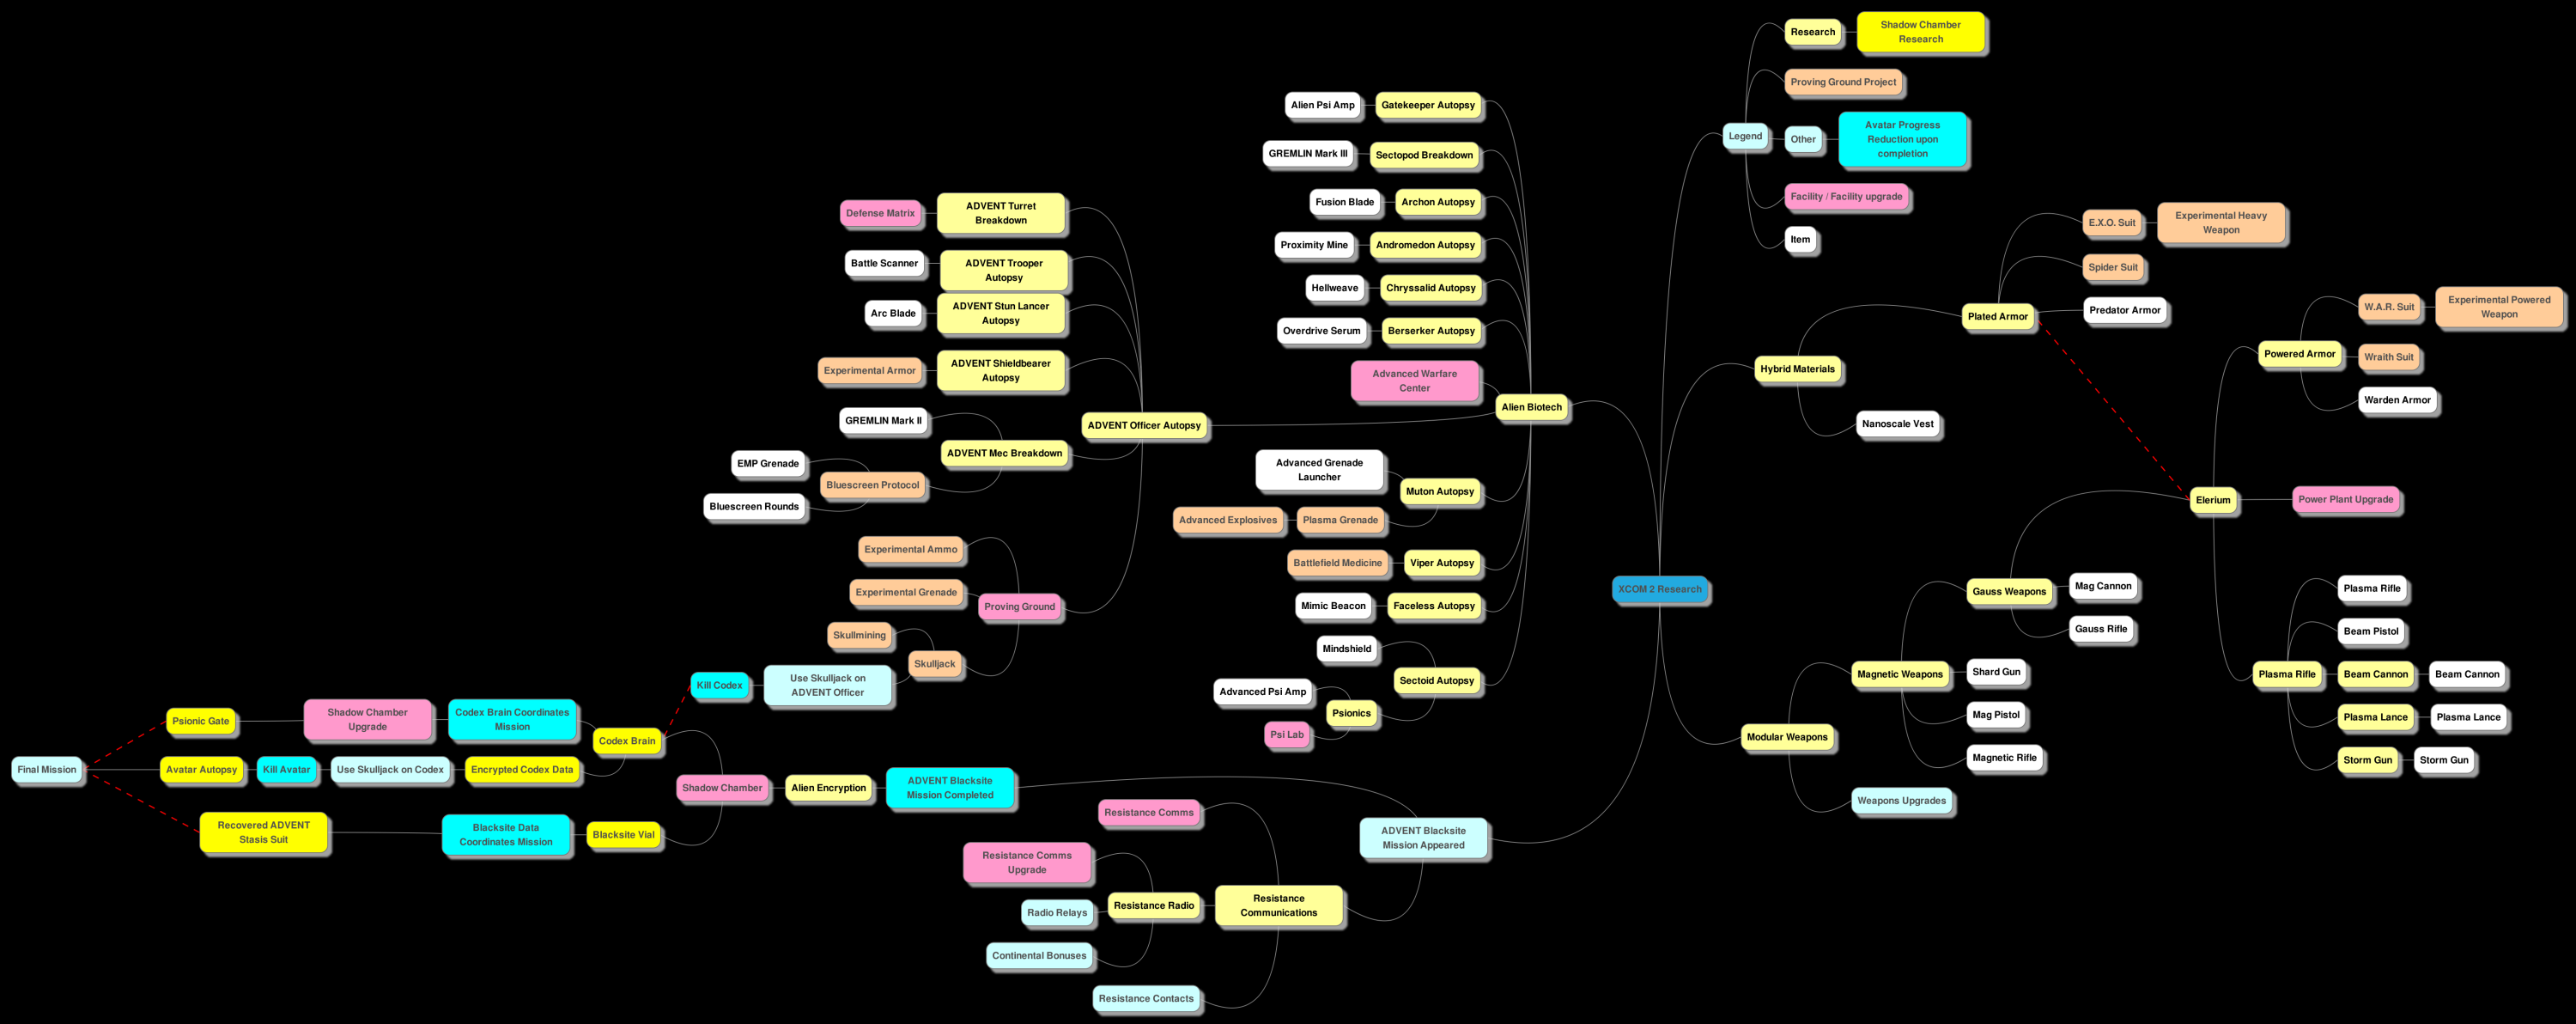 Research projects xcom 2 xcom wiki fandom powered by wikia research tree diagram edit researchtreediagramv7 ccuart Image collections